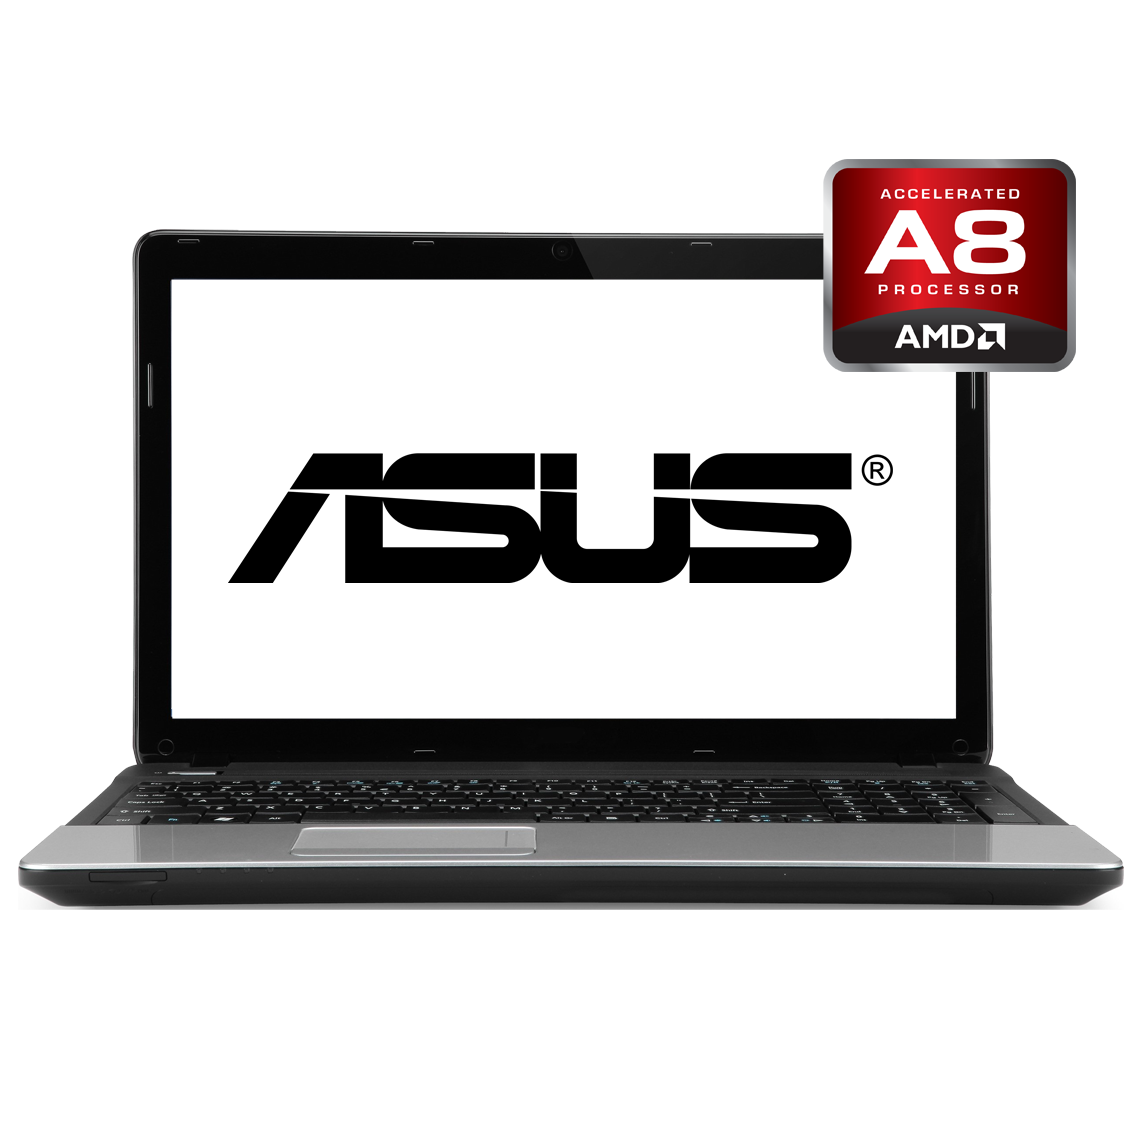 ASUS - 14 inch AMD A8